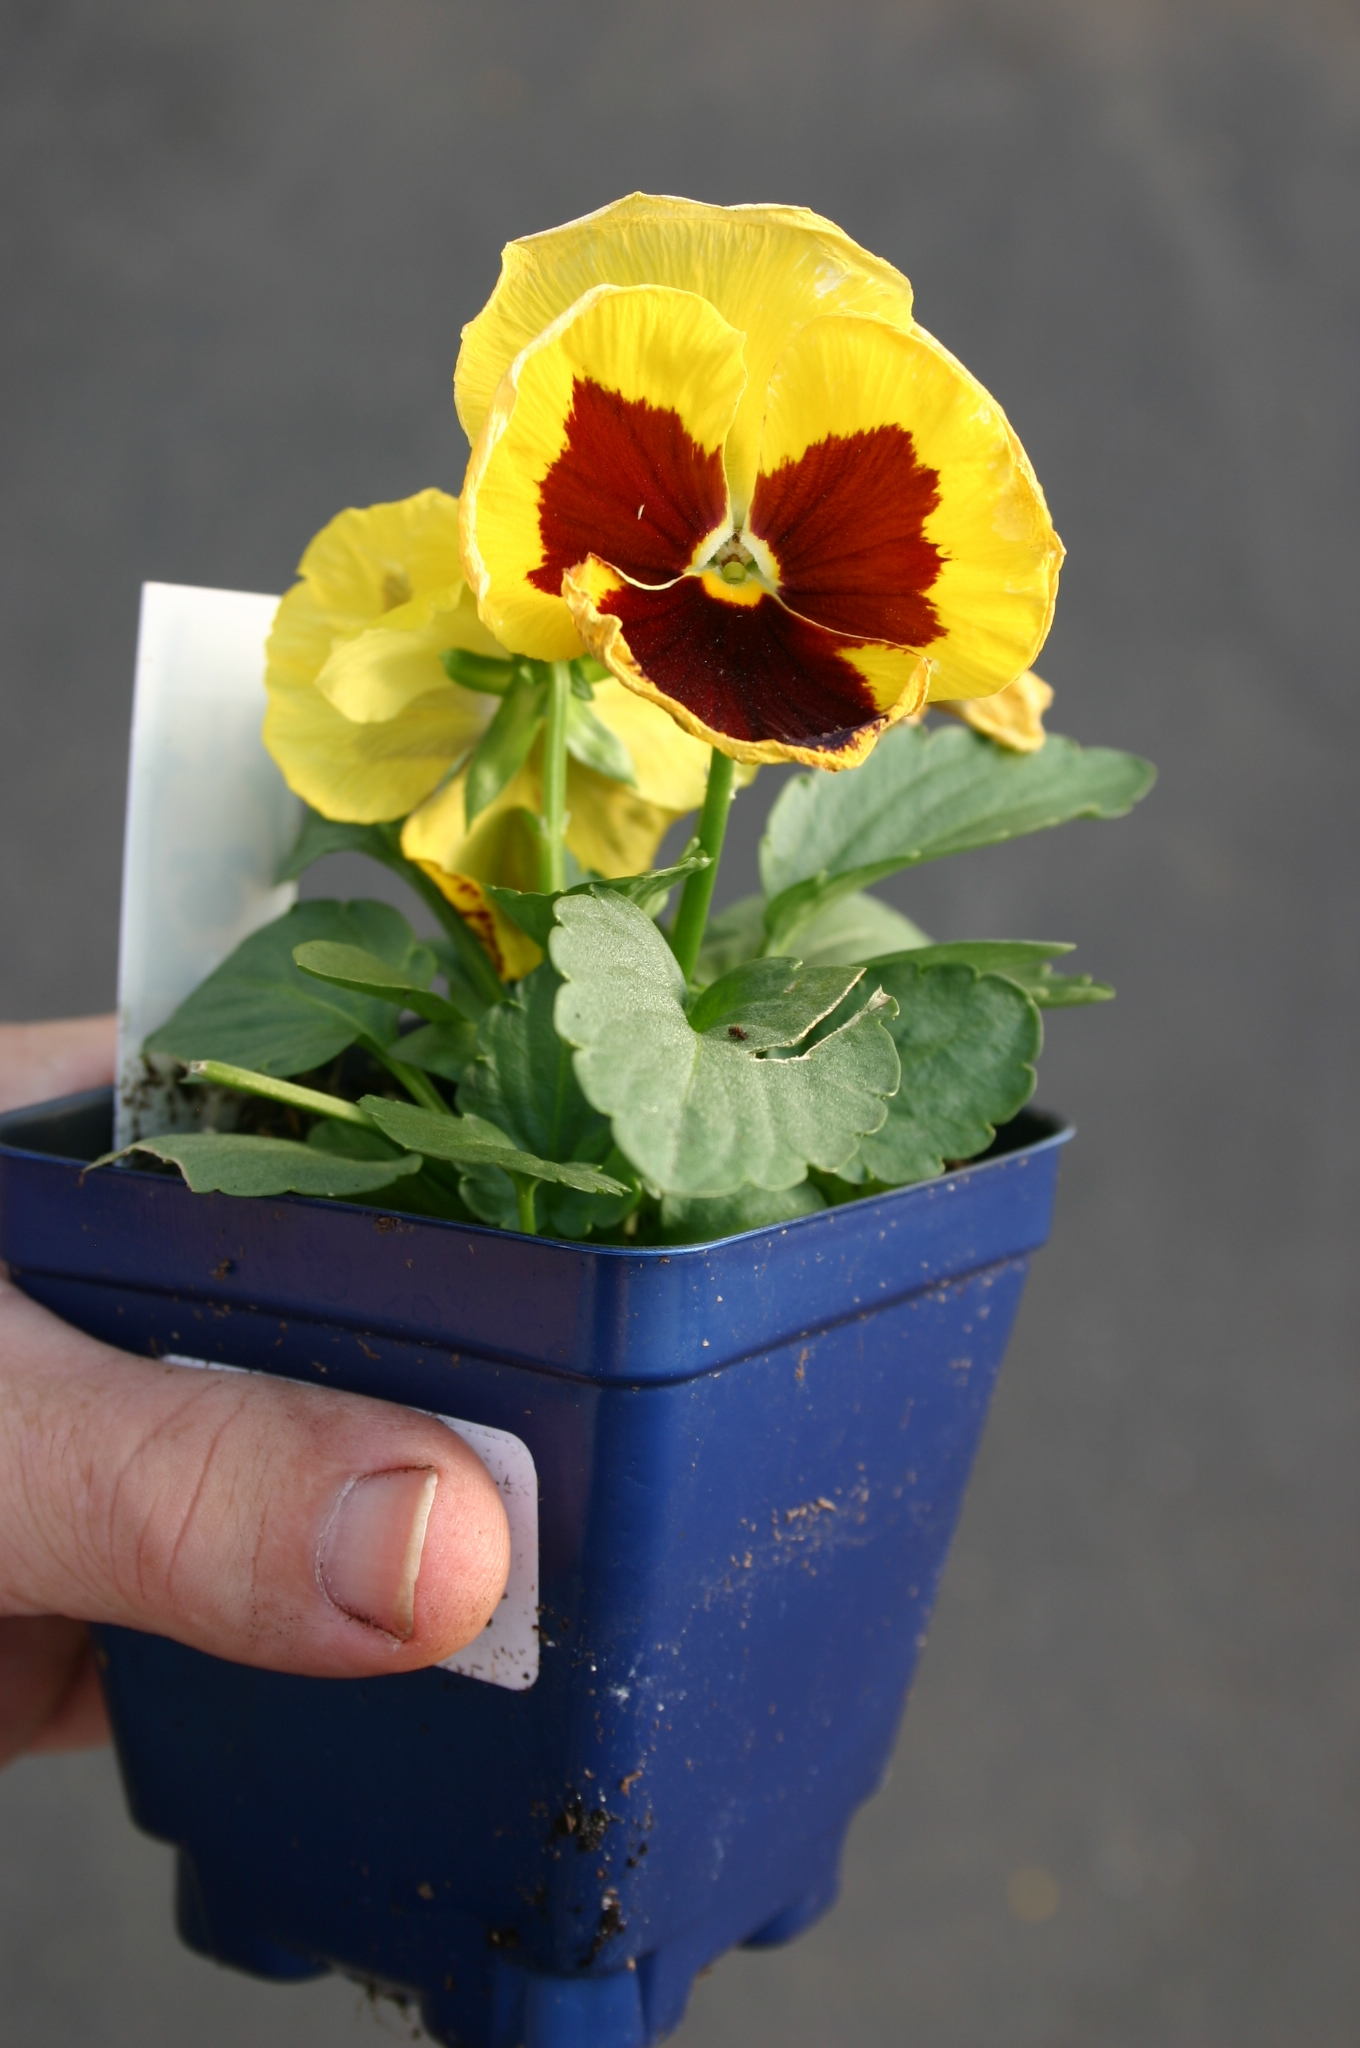 pansy 3 in pot